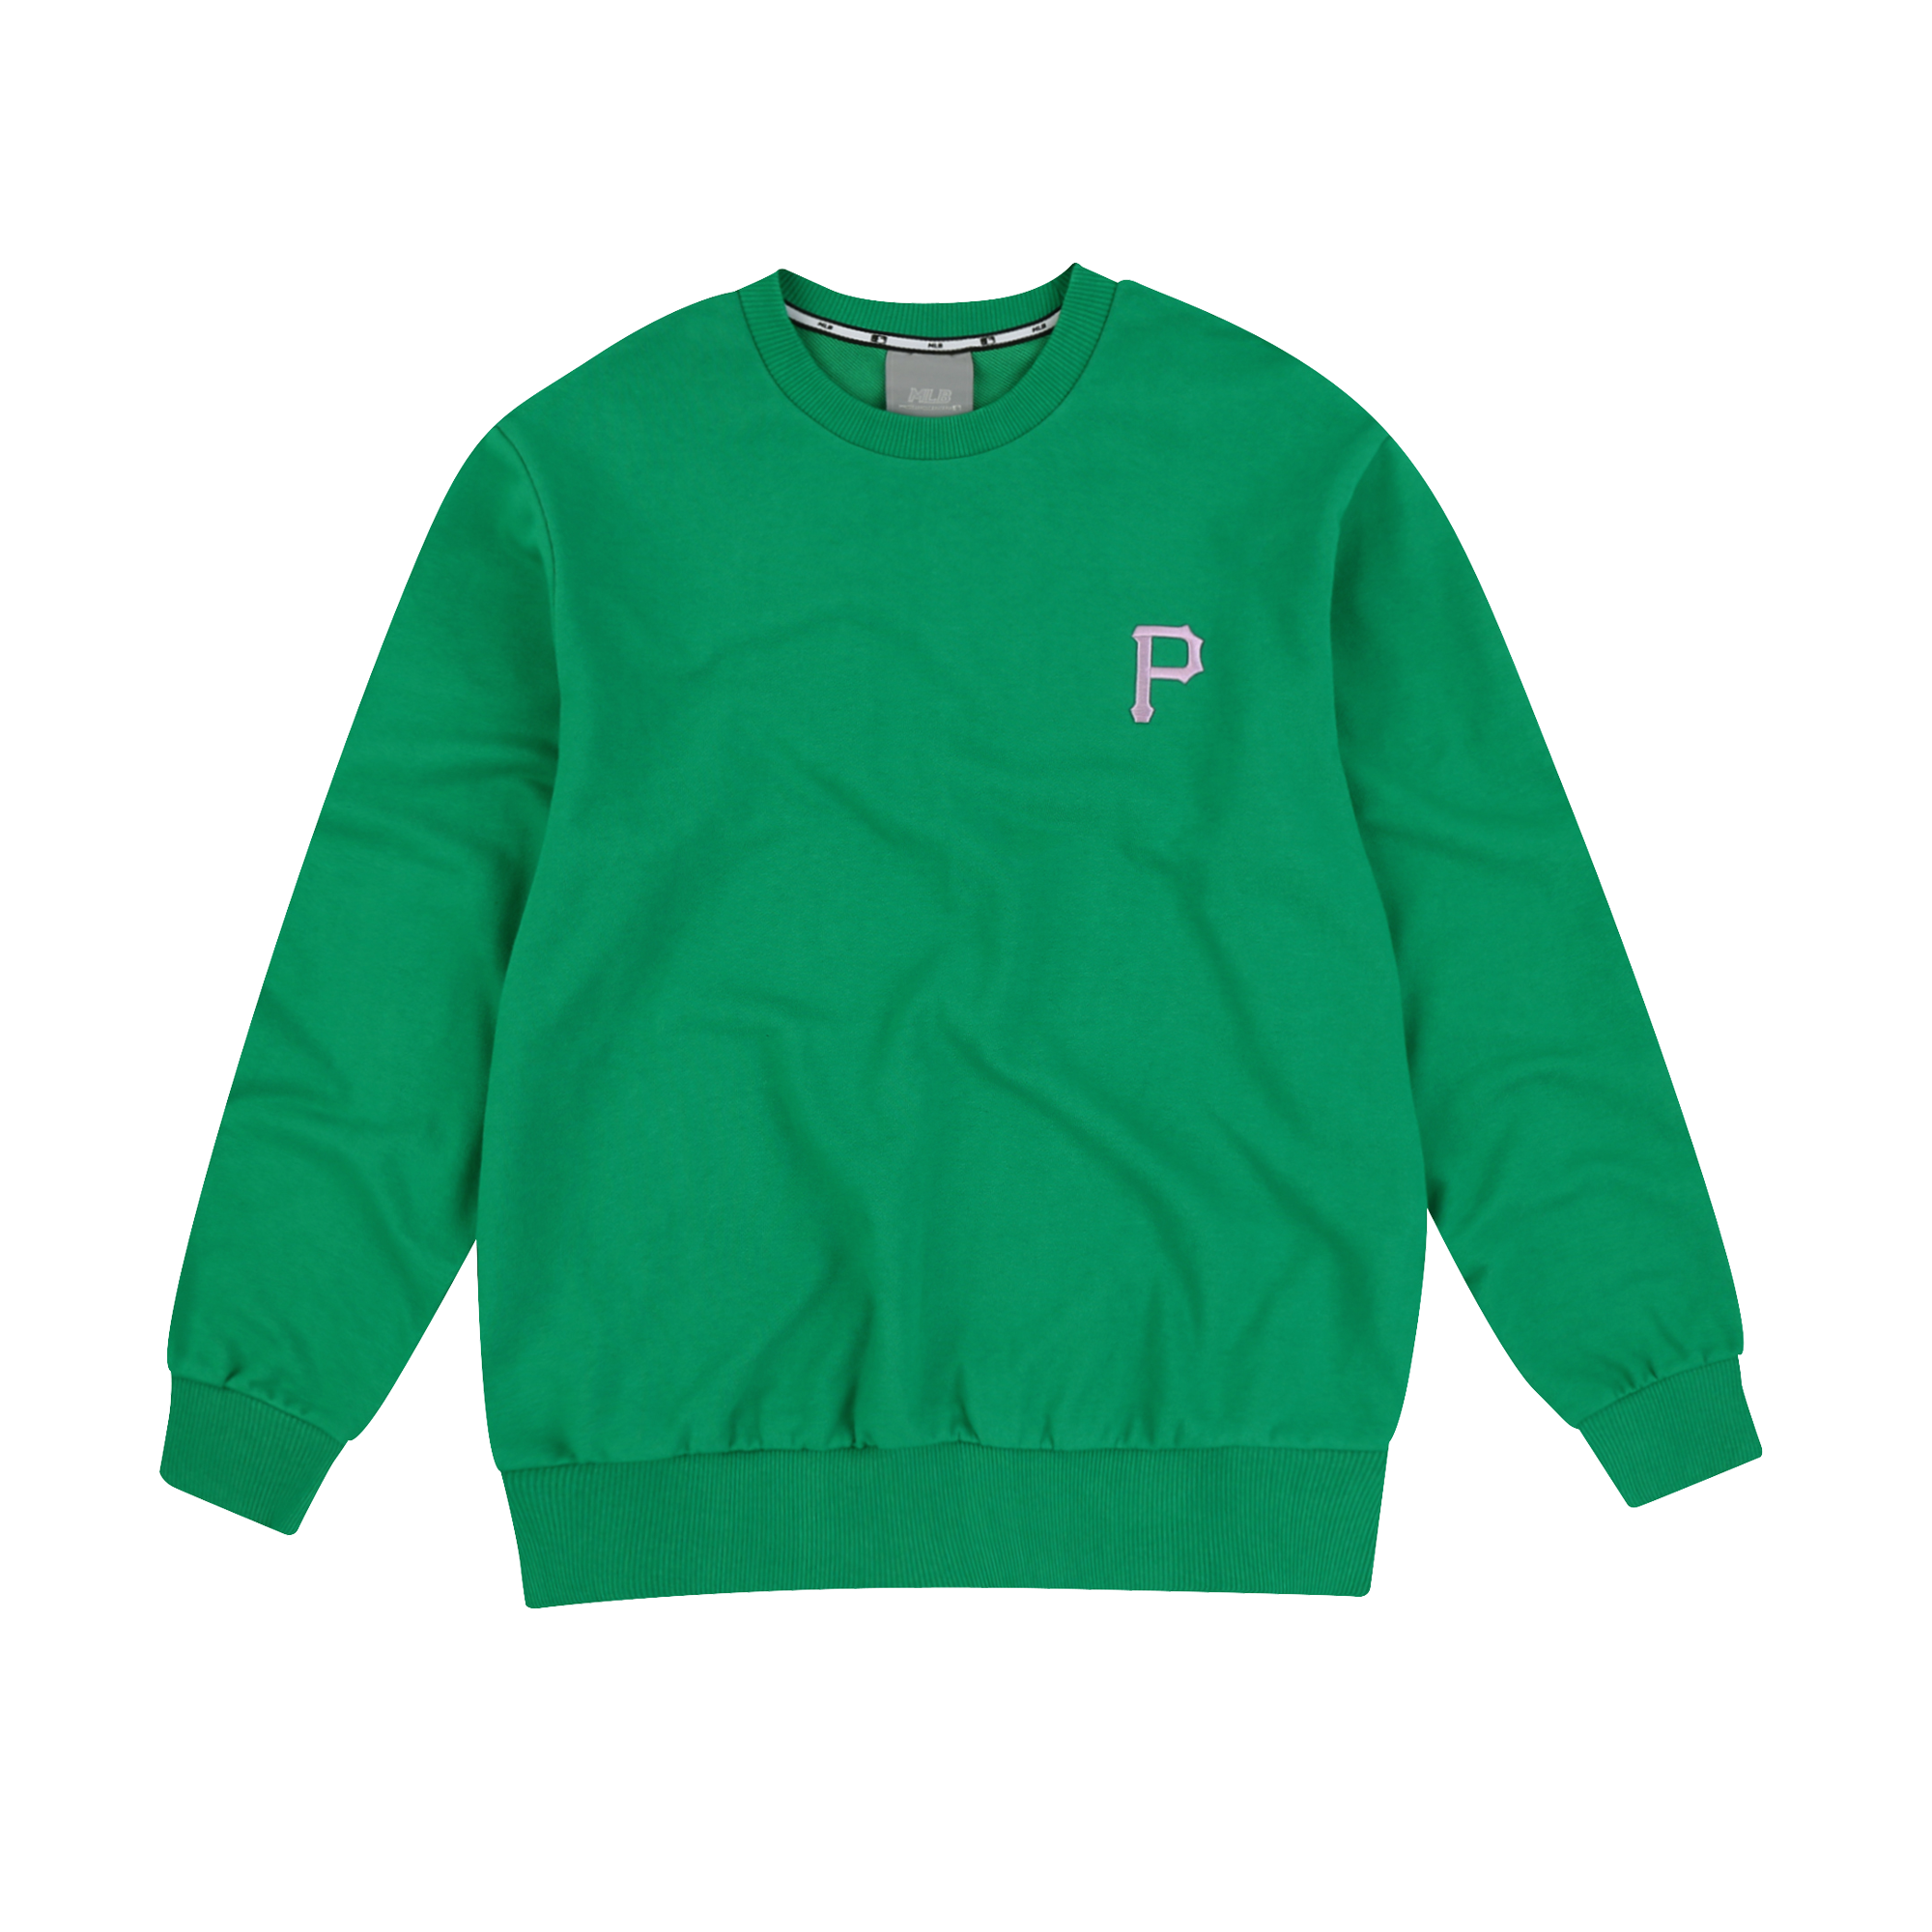 PITTSBURGH PIRATES SIGNATURE SMALL LOGO SWEATSHIRT